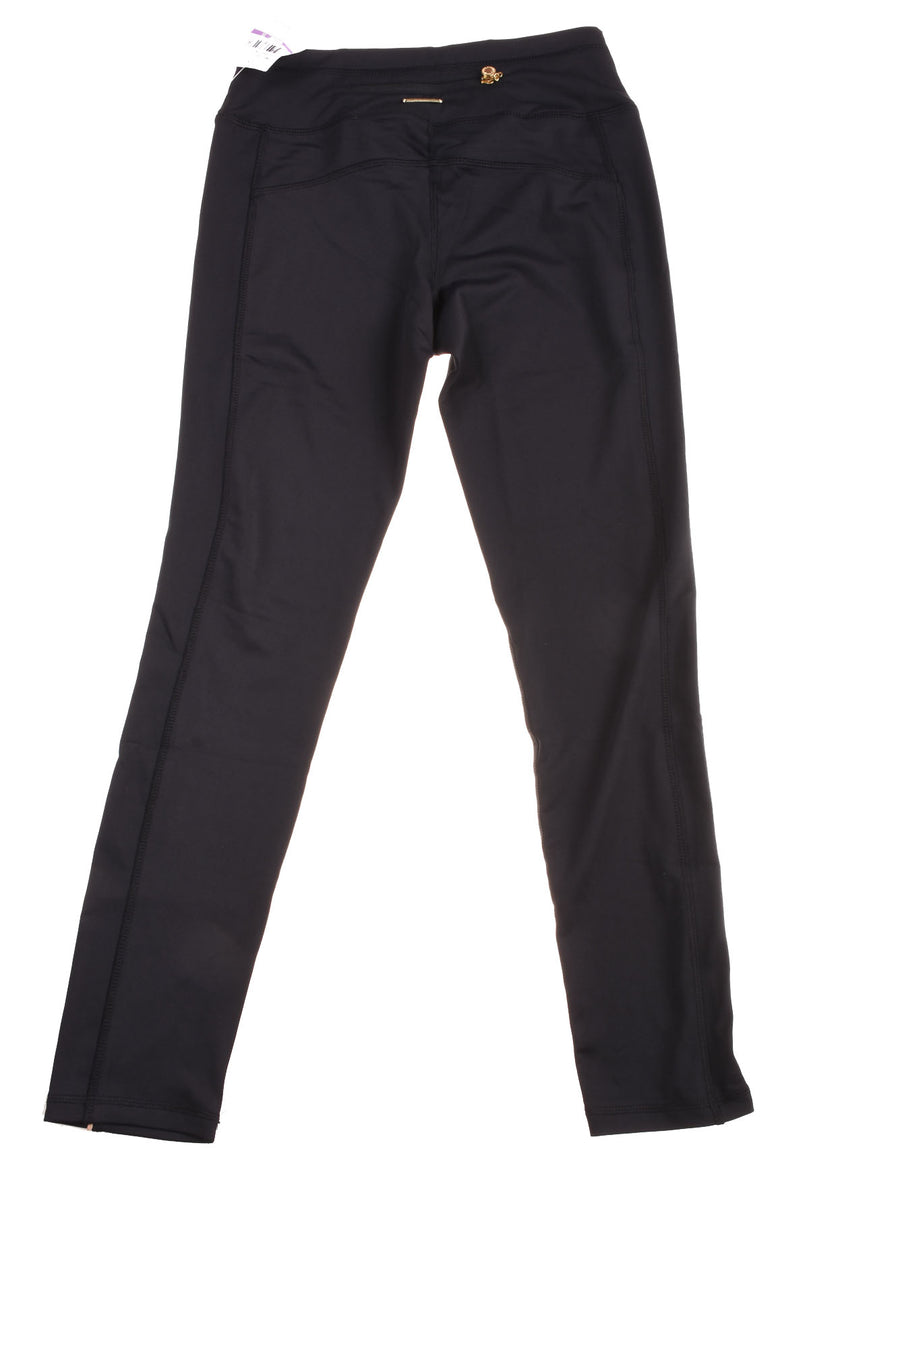 NEW Catherine Malandrino Women's Pants Small Black